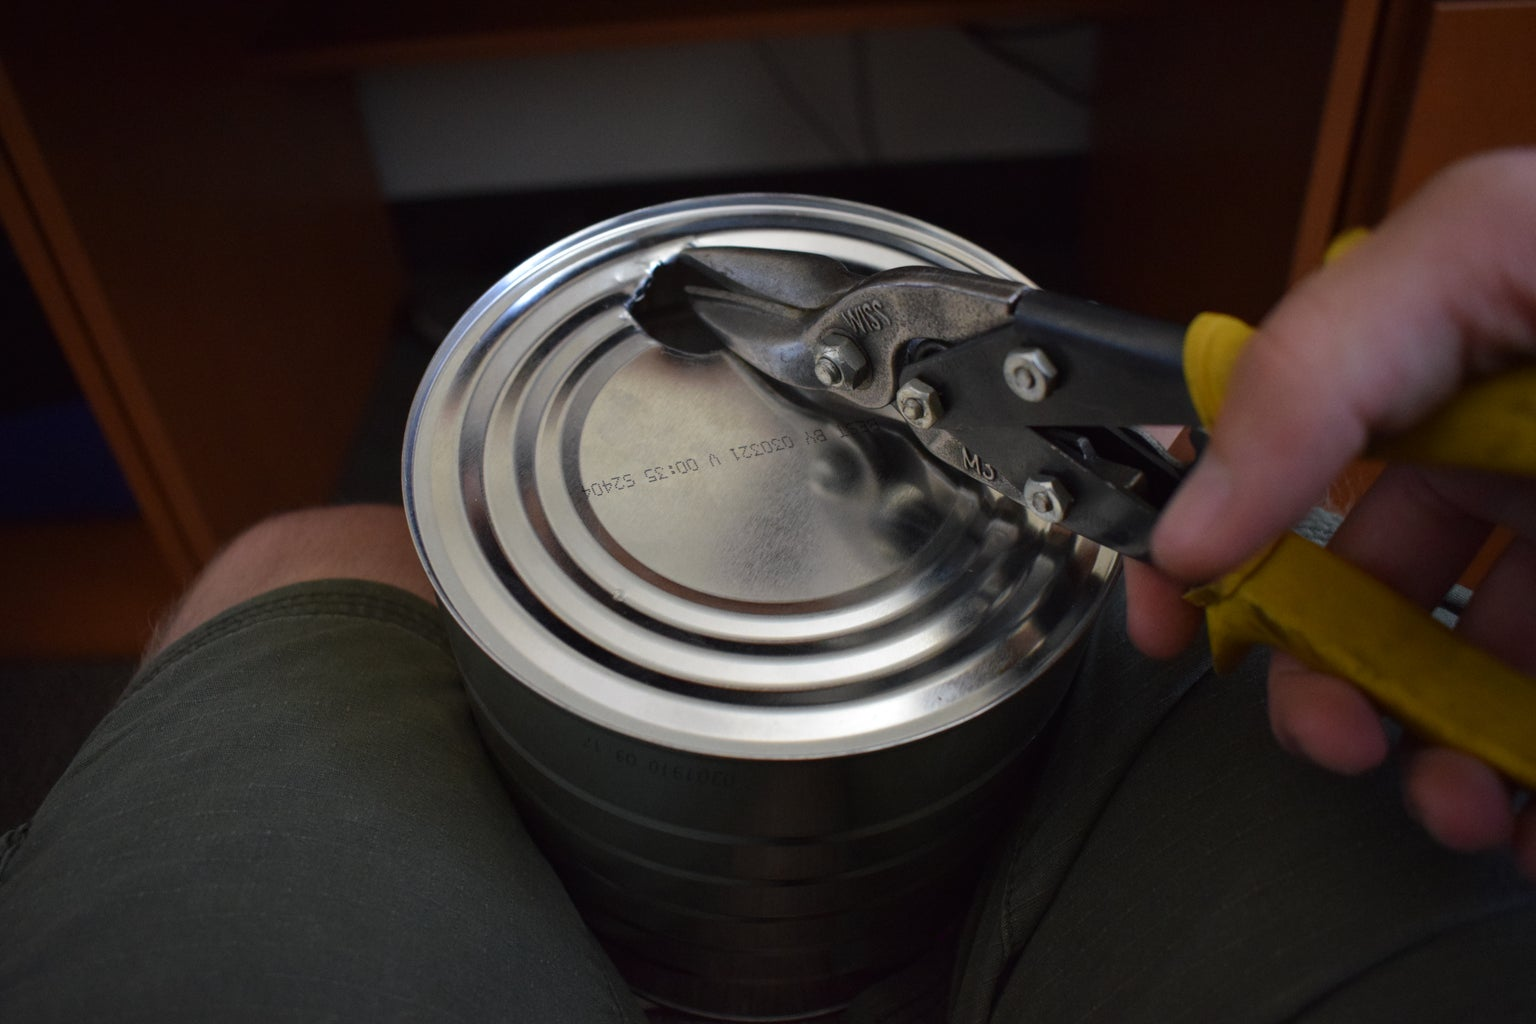 Prepping the Cans